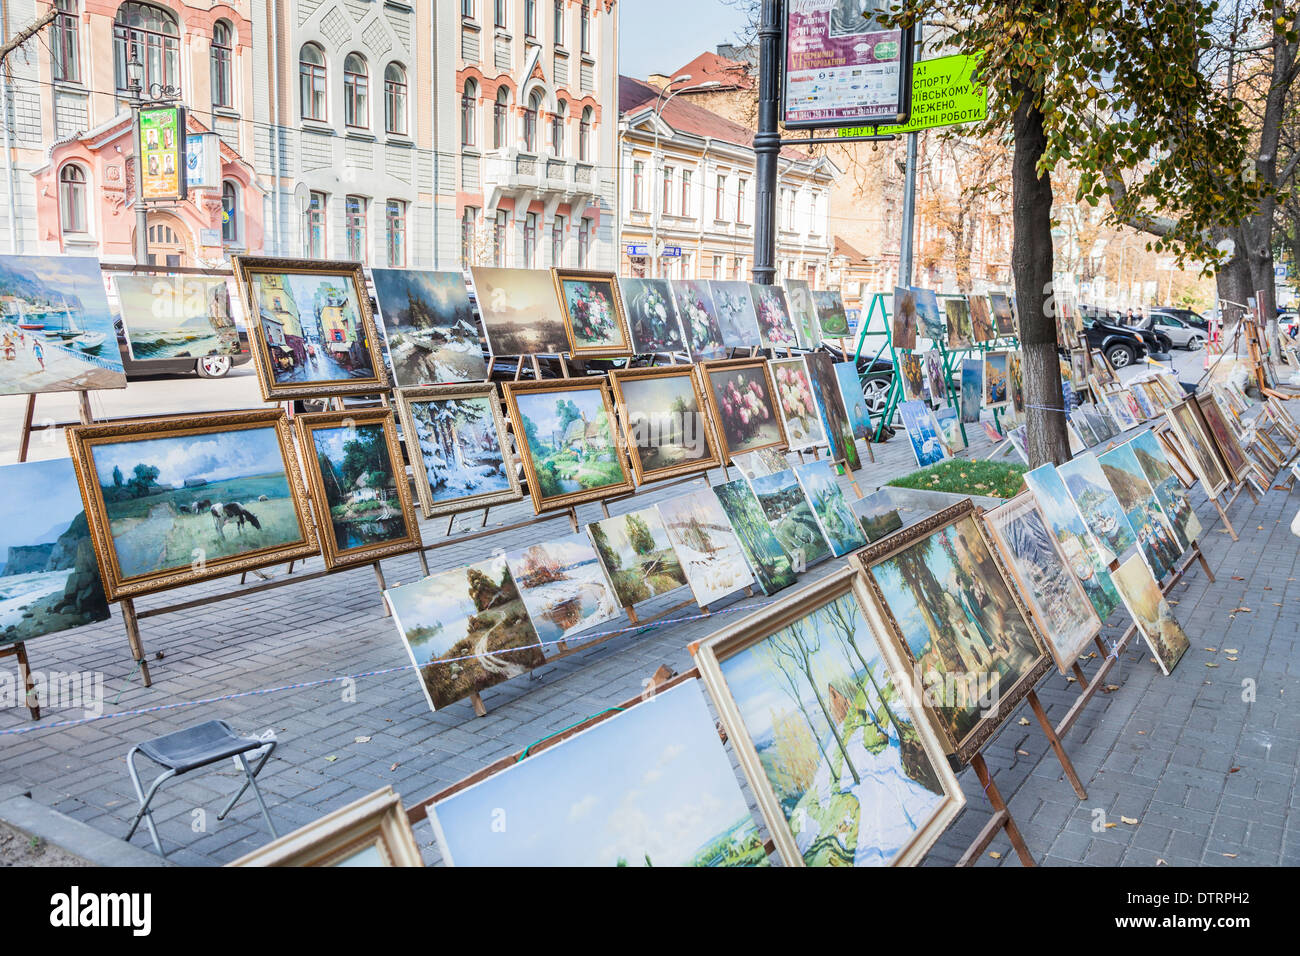 Paintings and pictures for sale to tourists as souvenirs on the street in Kiev, Ukraine, eastern Europe - Stock Image